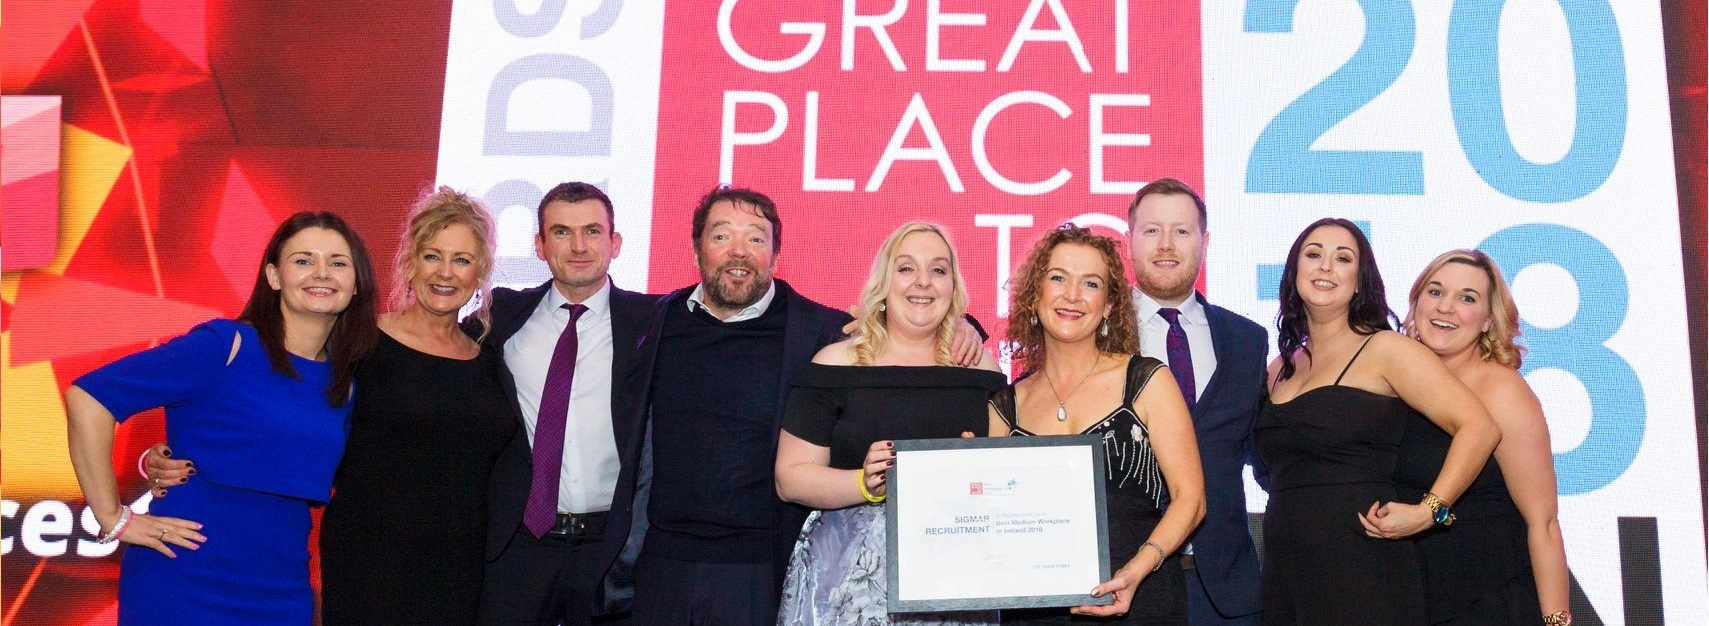 Great Place To Work Awards 2018